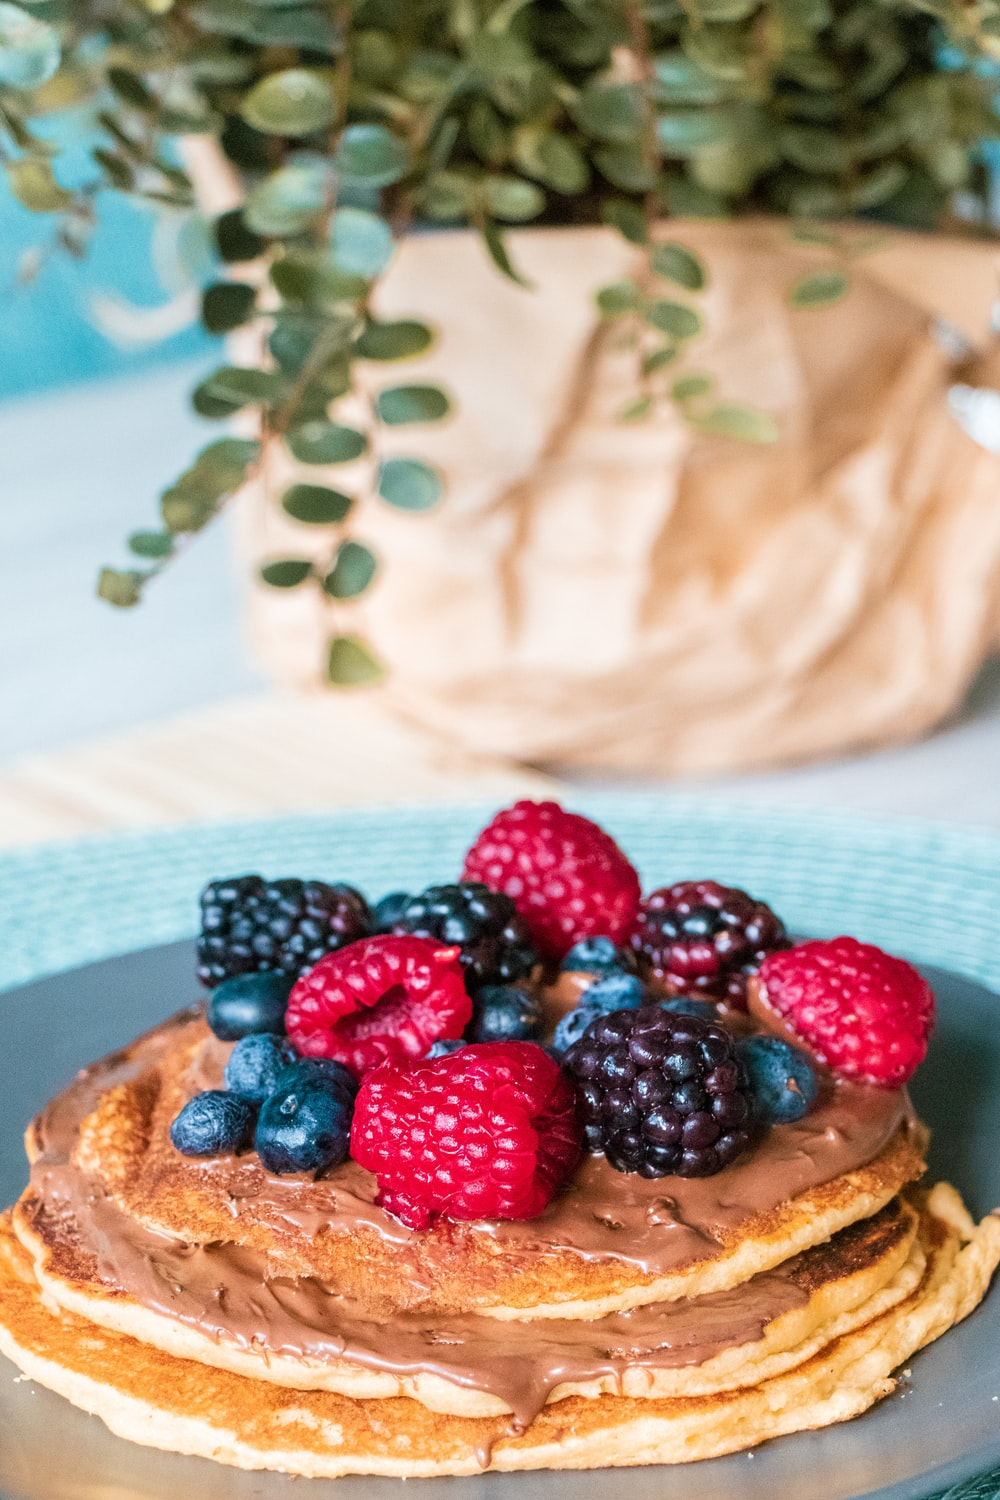 blackberries, raspberries, and blueberries on pancake